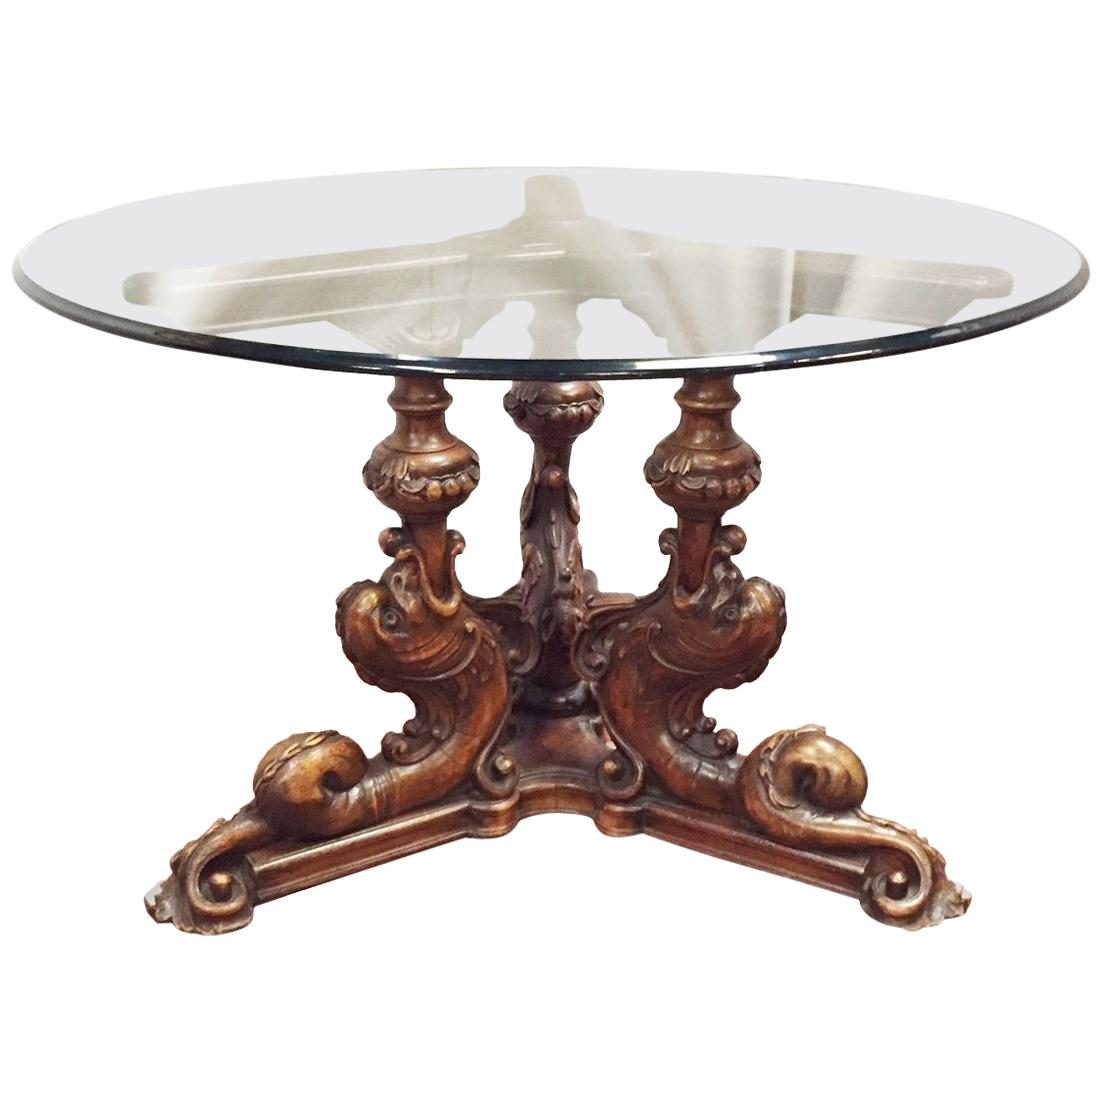 Italian Carved Dolphin Round Table, 19th Century